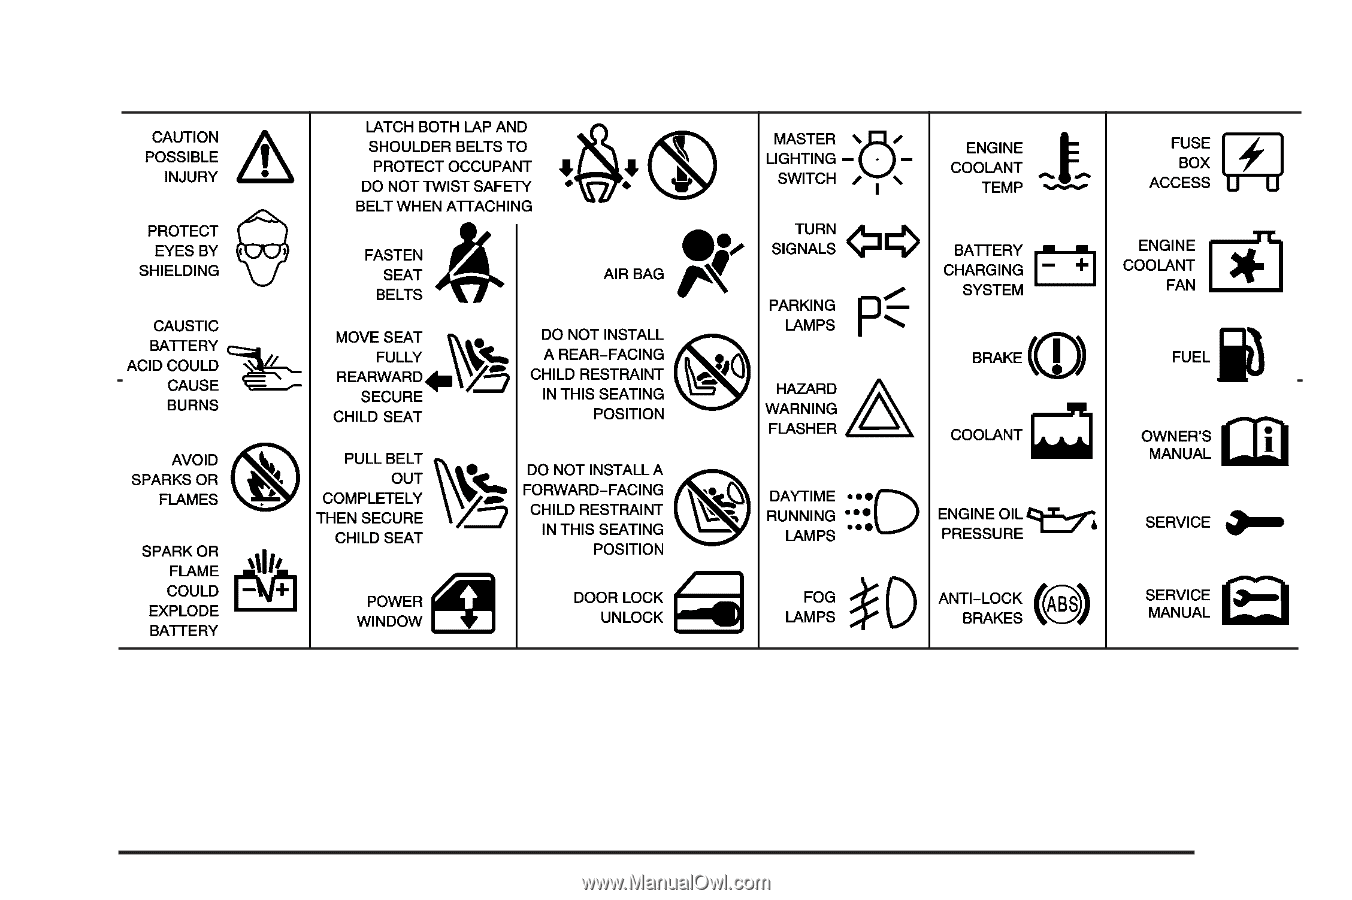 These are some examples of symbols you may find on your vehicle: